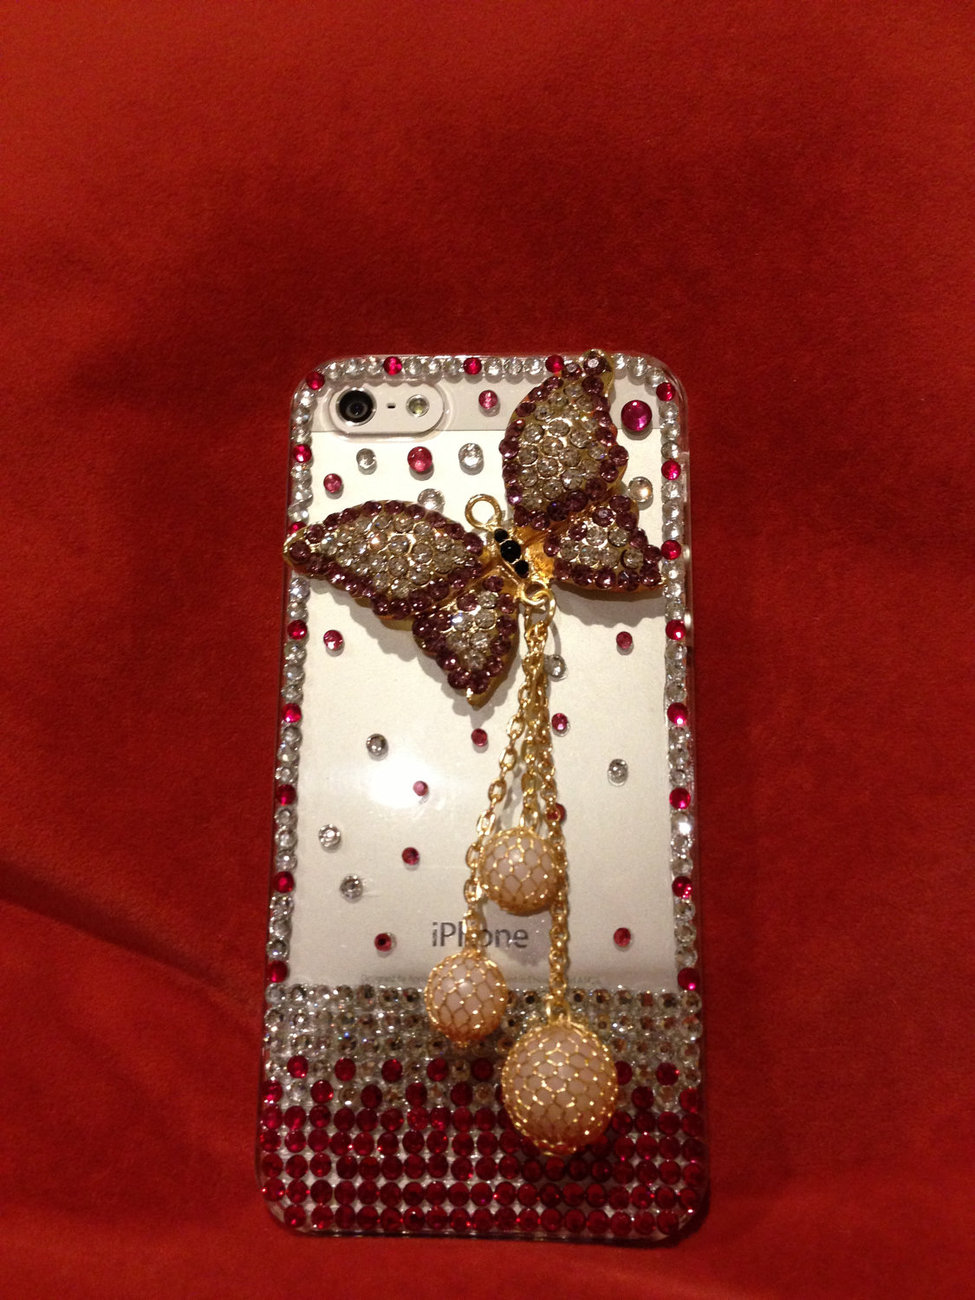 3D Luxury Bling Diamond Crystal Butterfly Clear Case For iphone 5 Very Beautiful image 2